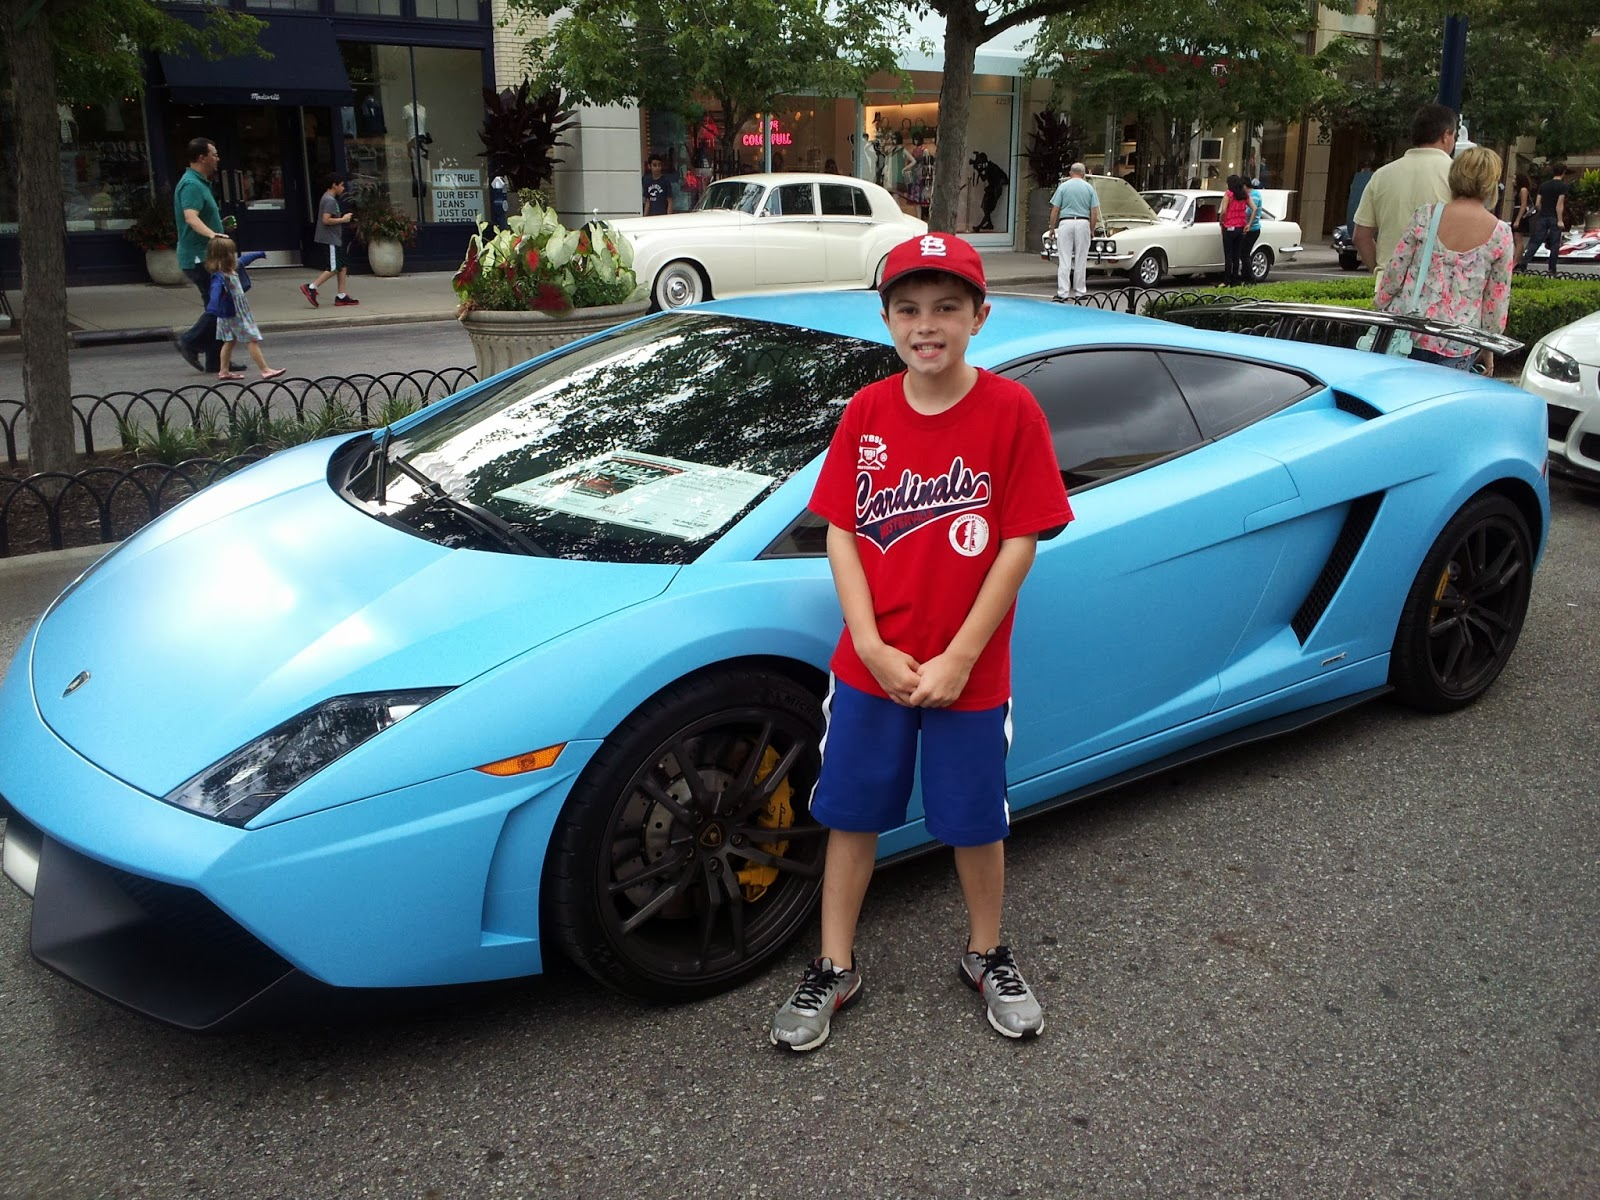 This Was At My First Exotic Car Show I Believe Is A Lamborghini Gallardo 8 Years Old But Now Am 9